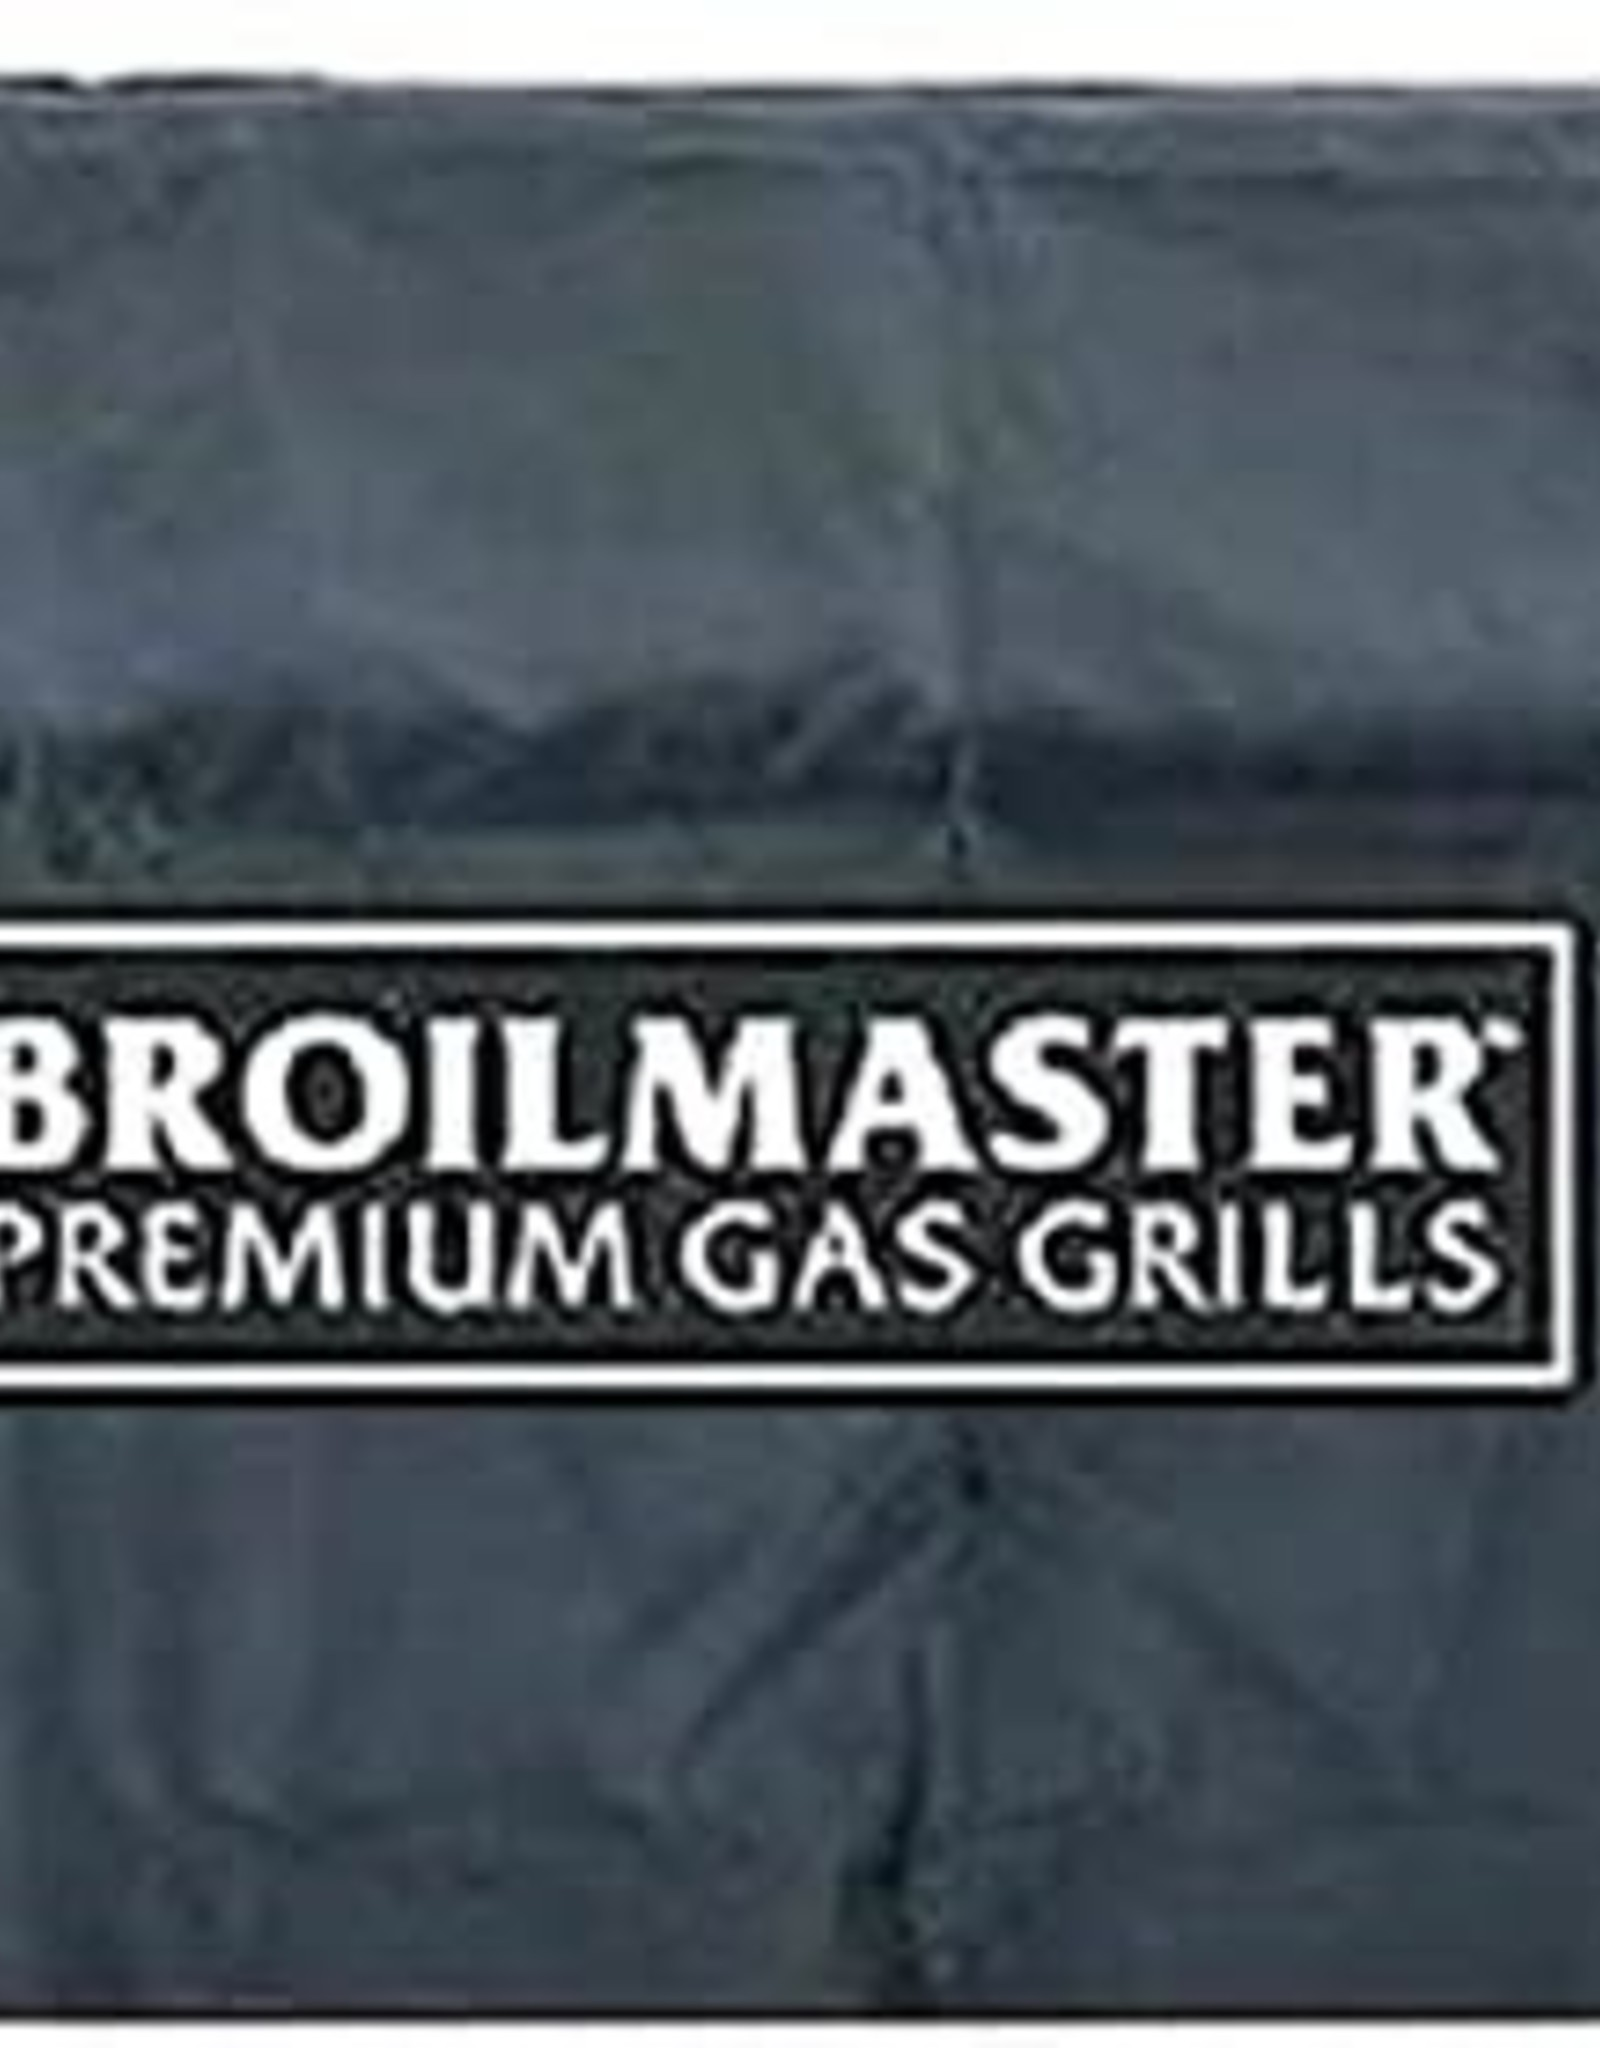 Broilmaster Broilmaster Grill Cover for 26in Built-in Grill - BSACV26S